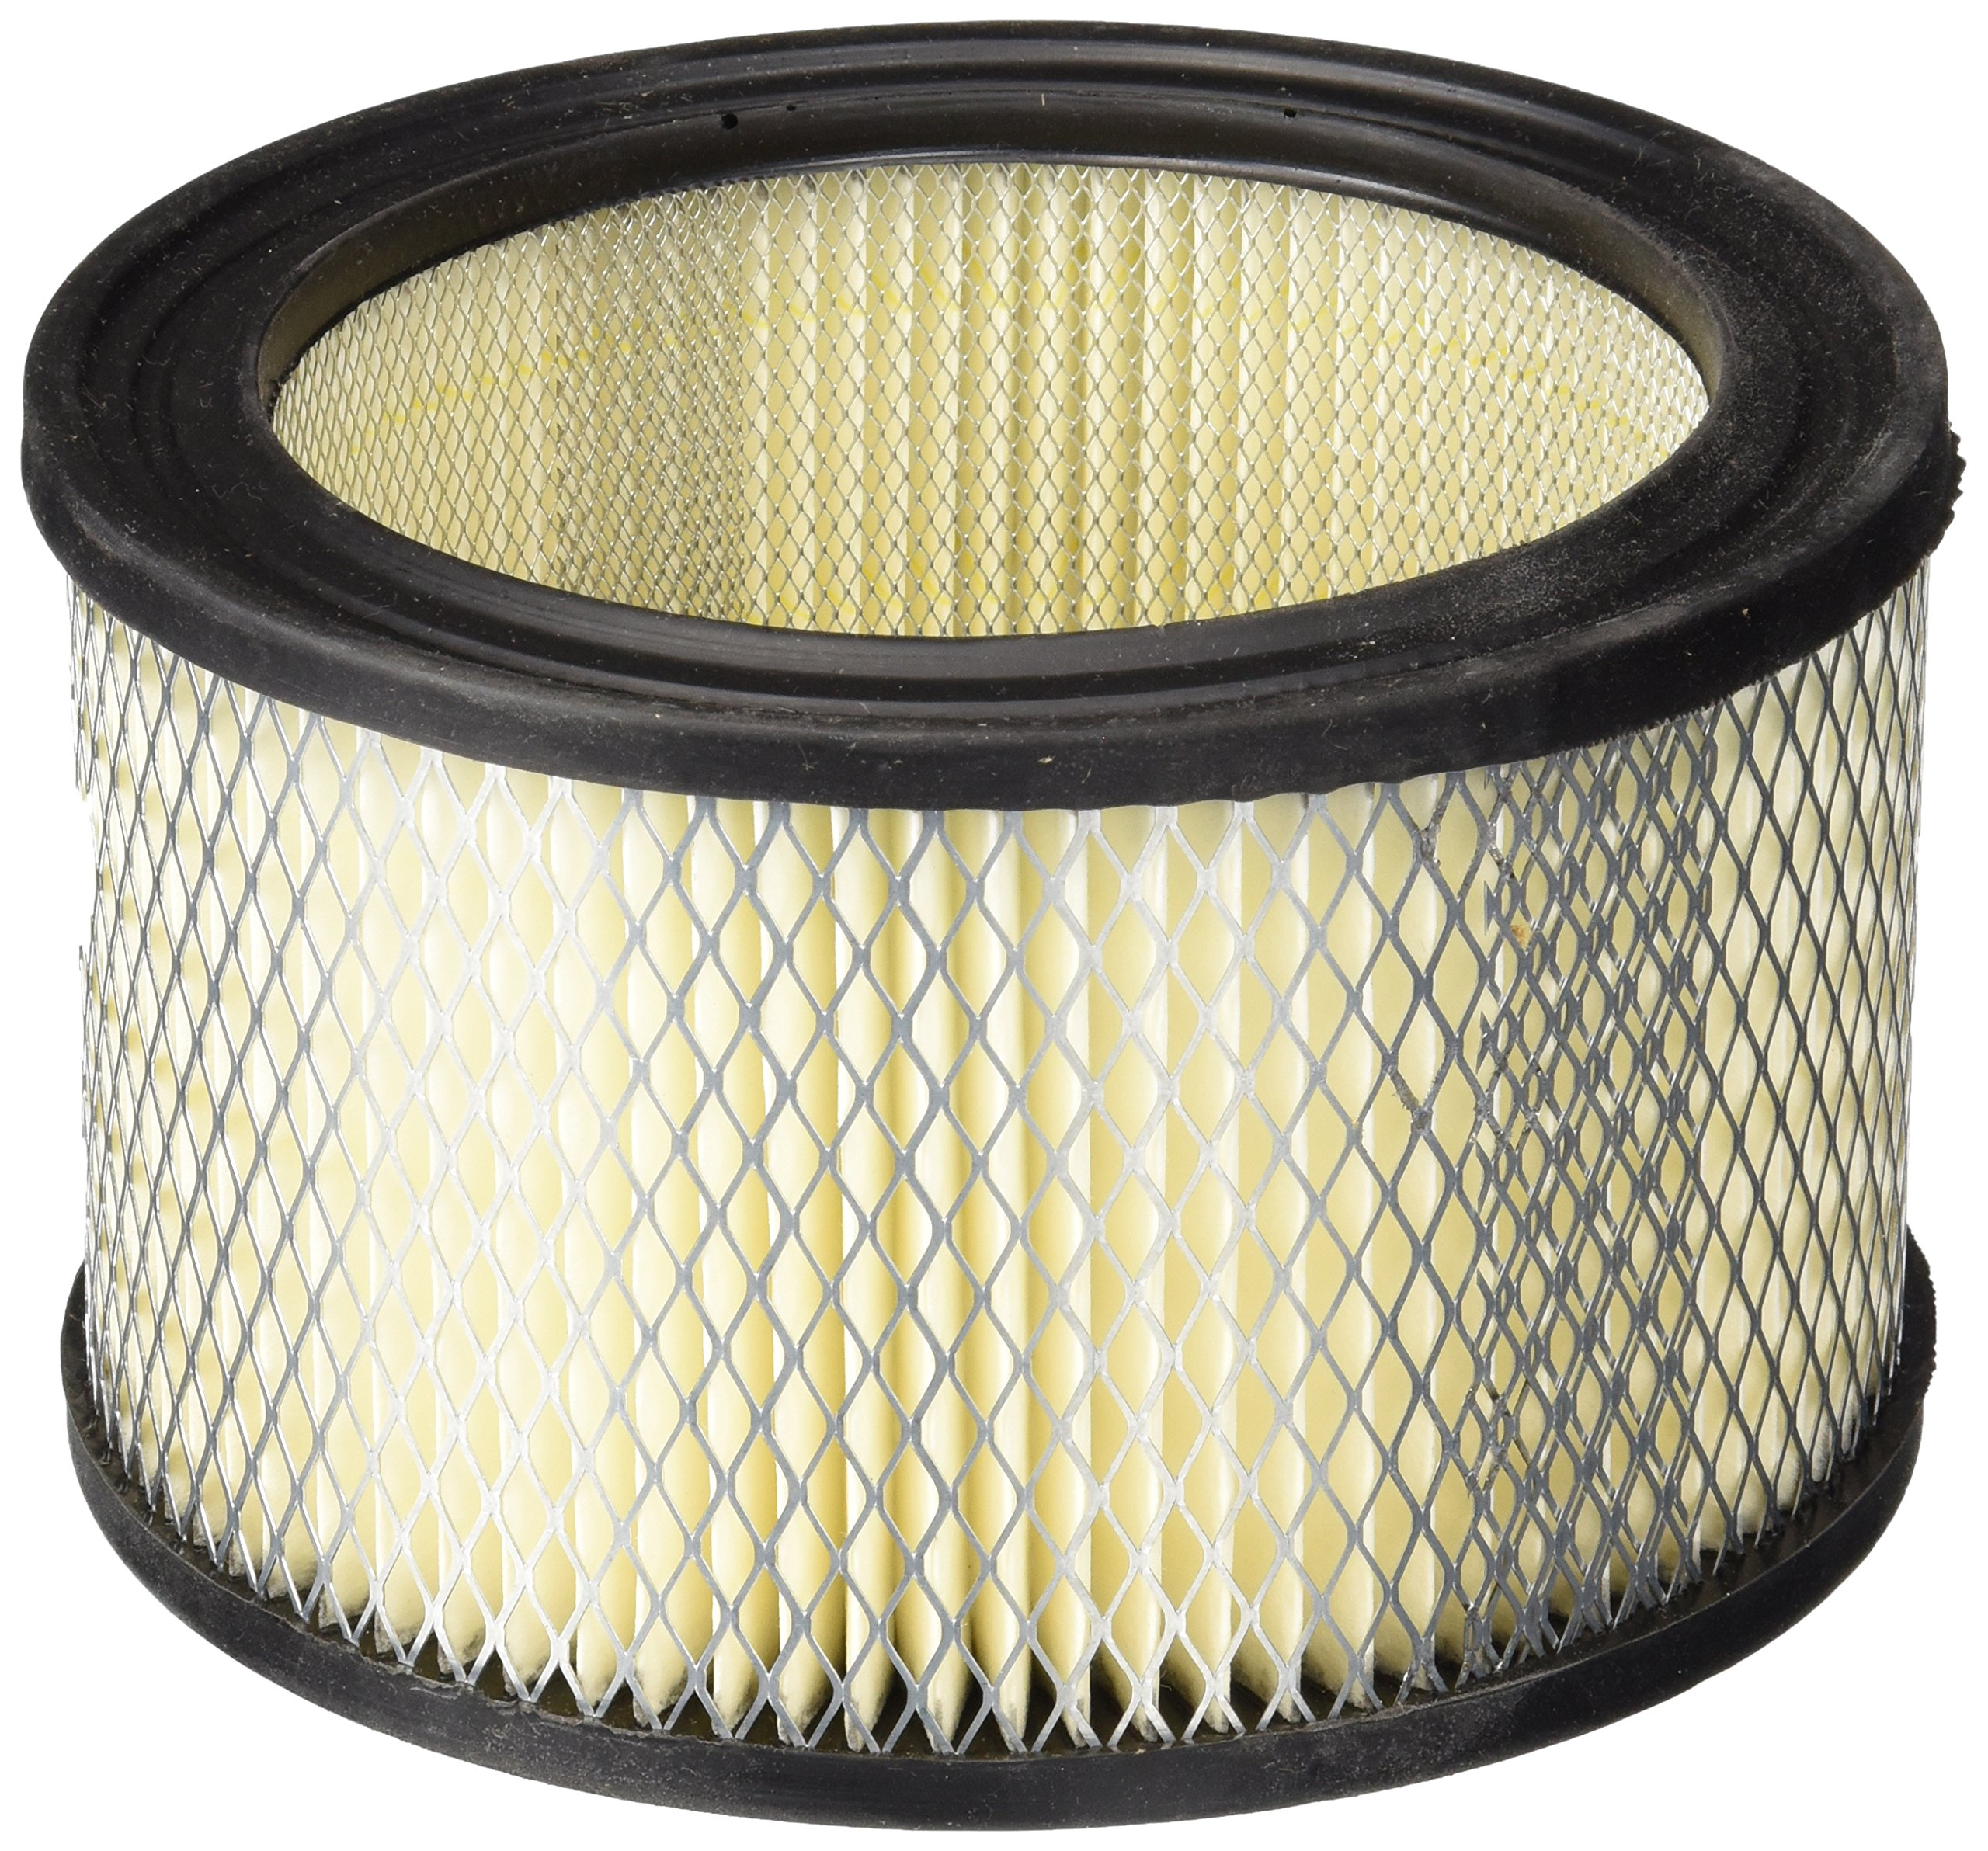 Killer Filter Replacement for F8-108 Stoddard